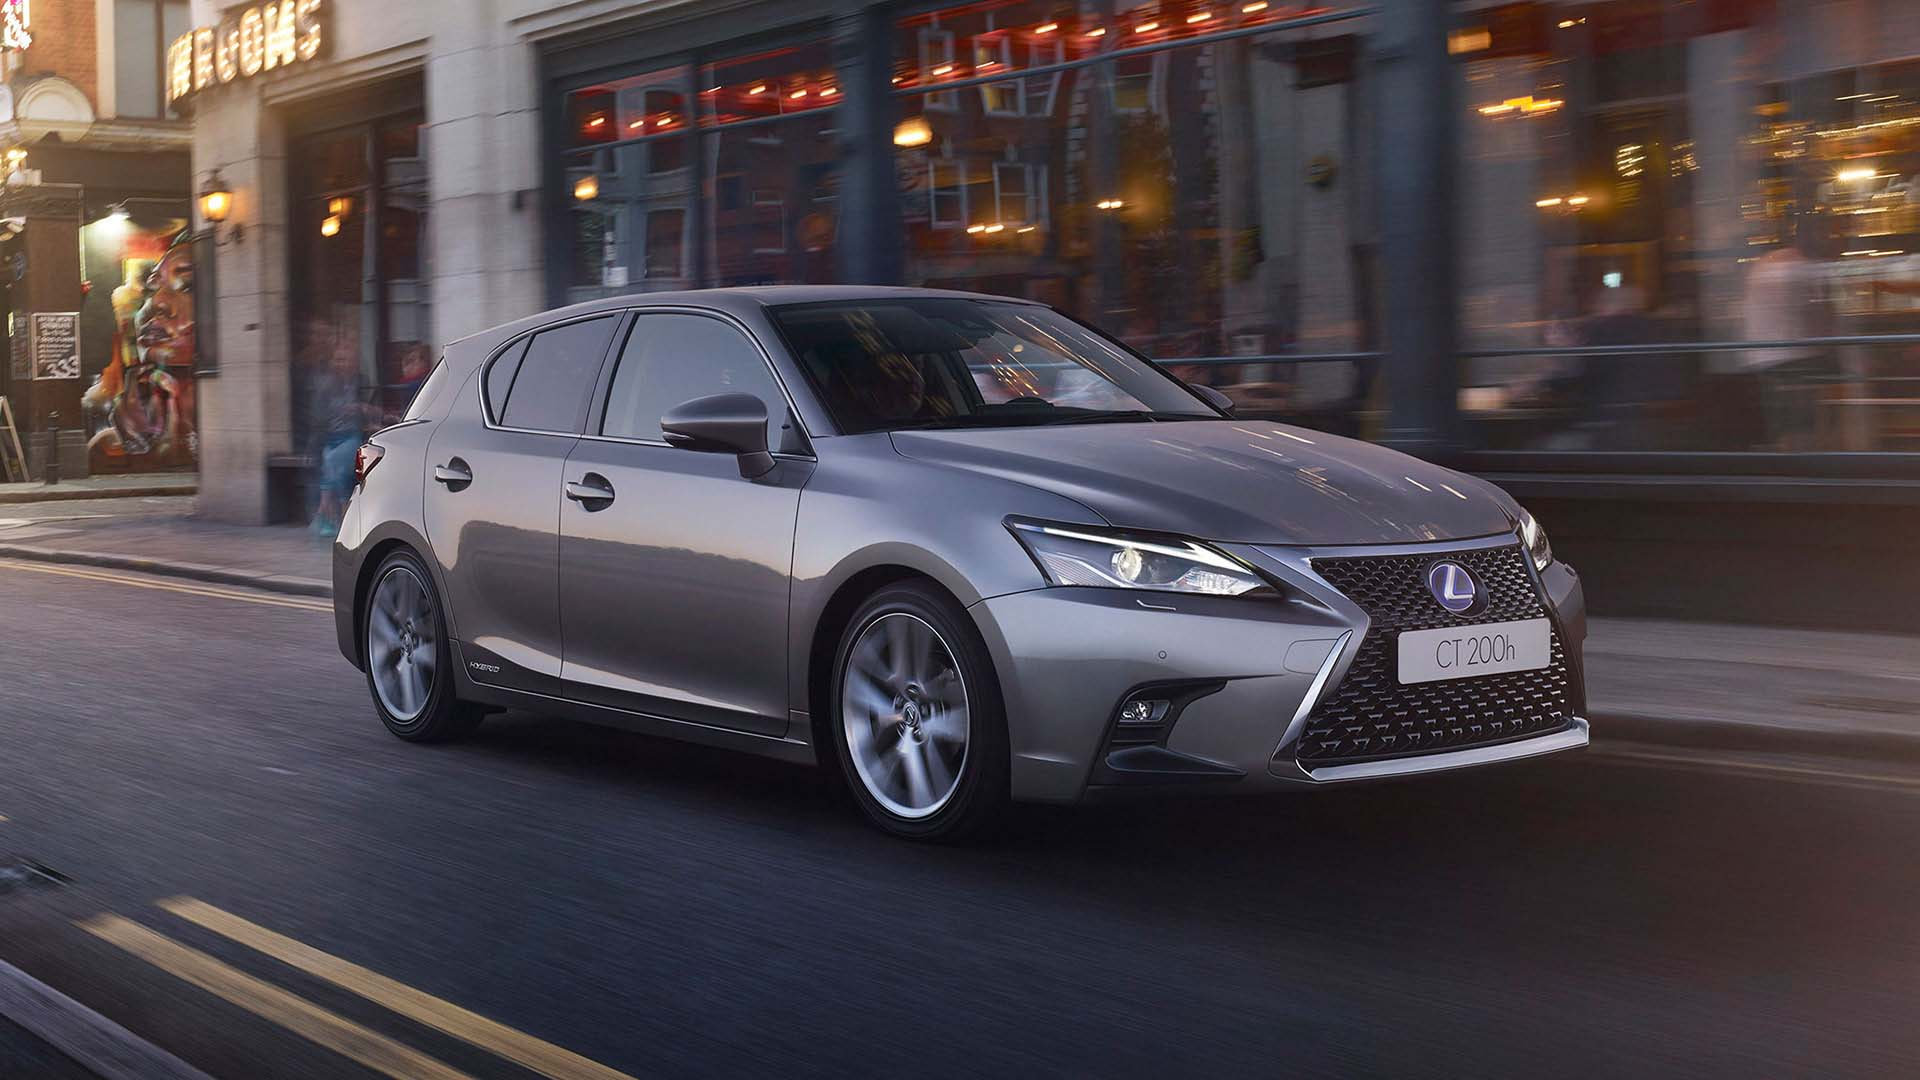 2020 Lexus CT 200h Price and Release date